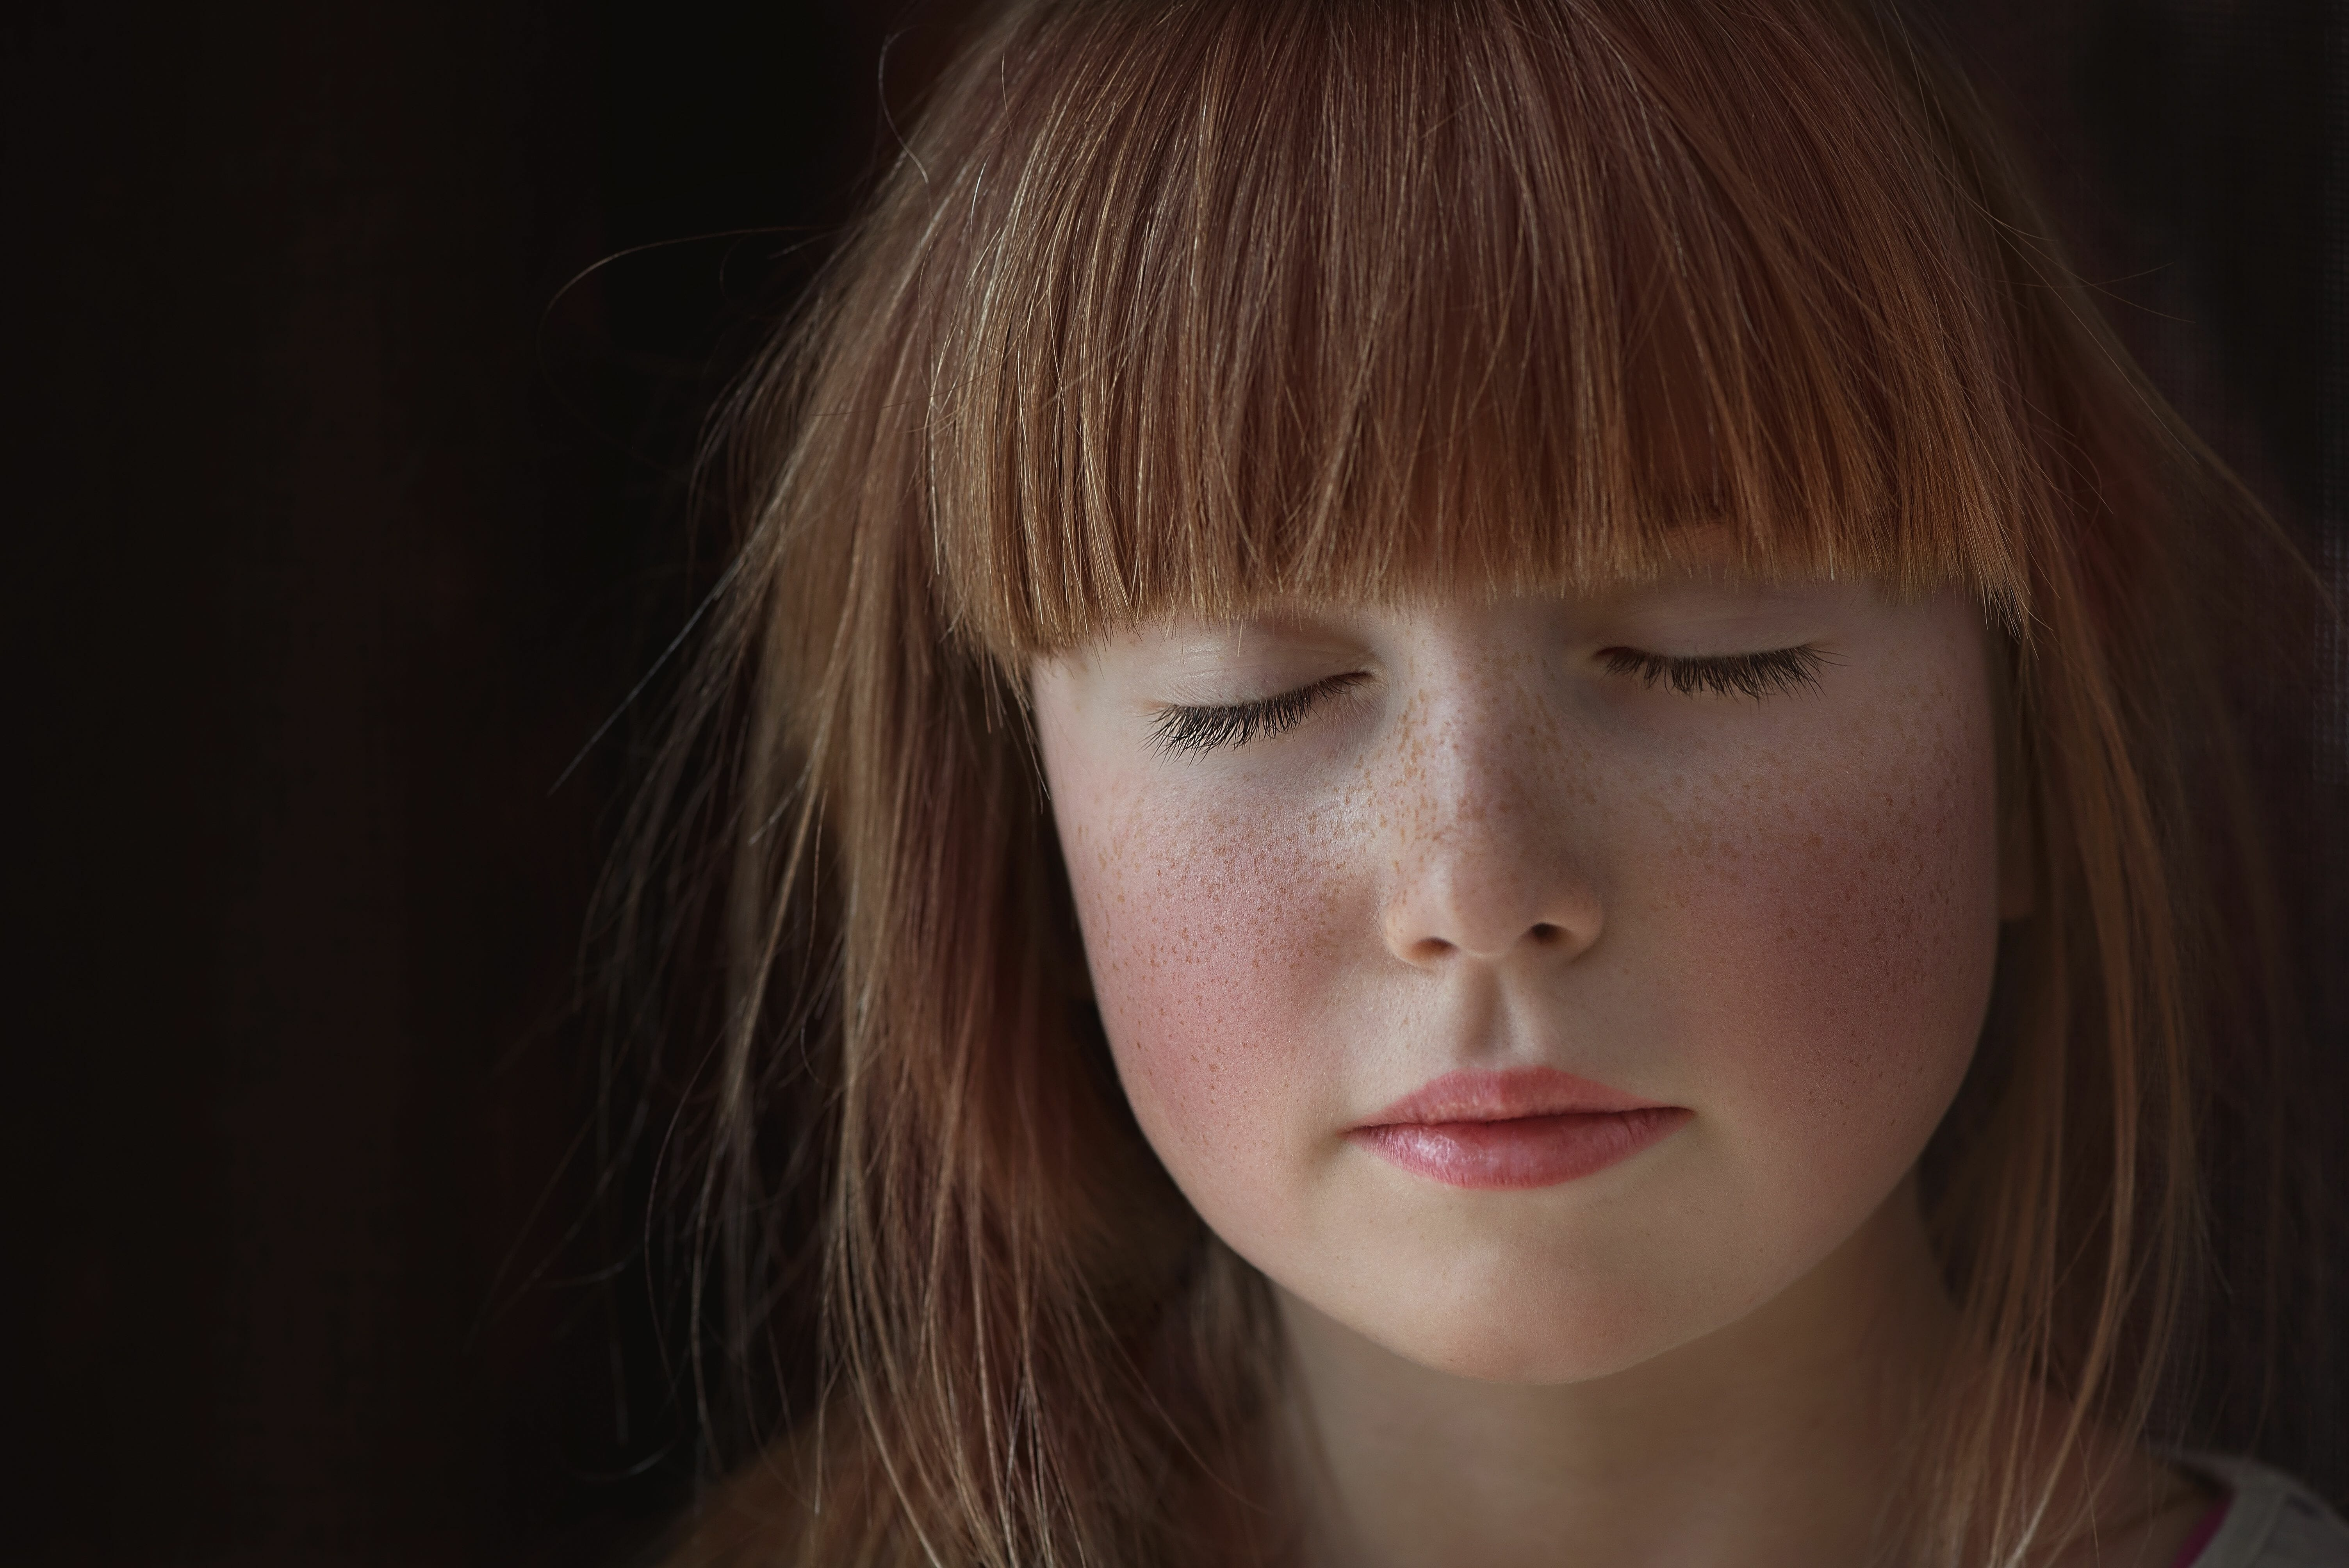 child with red hair and bangs